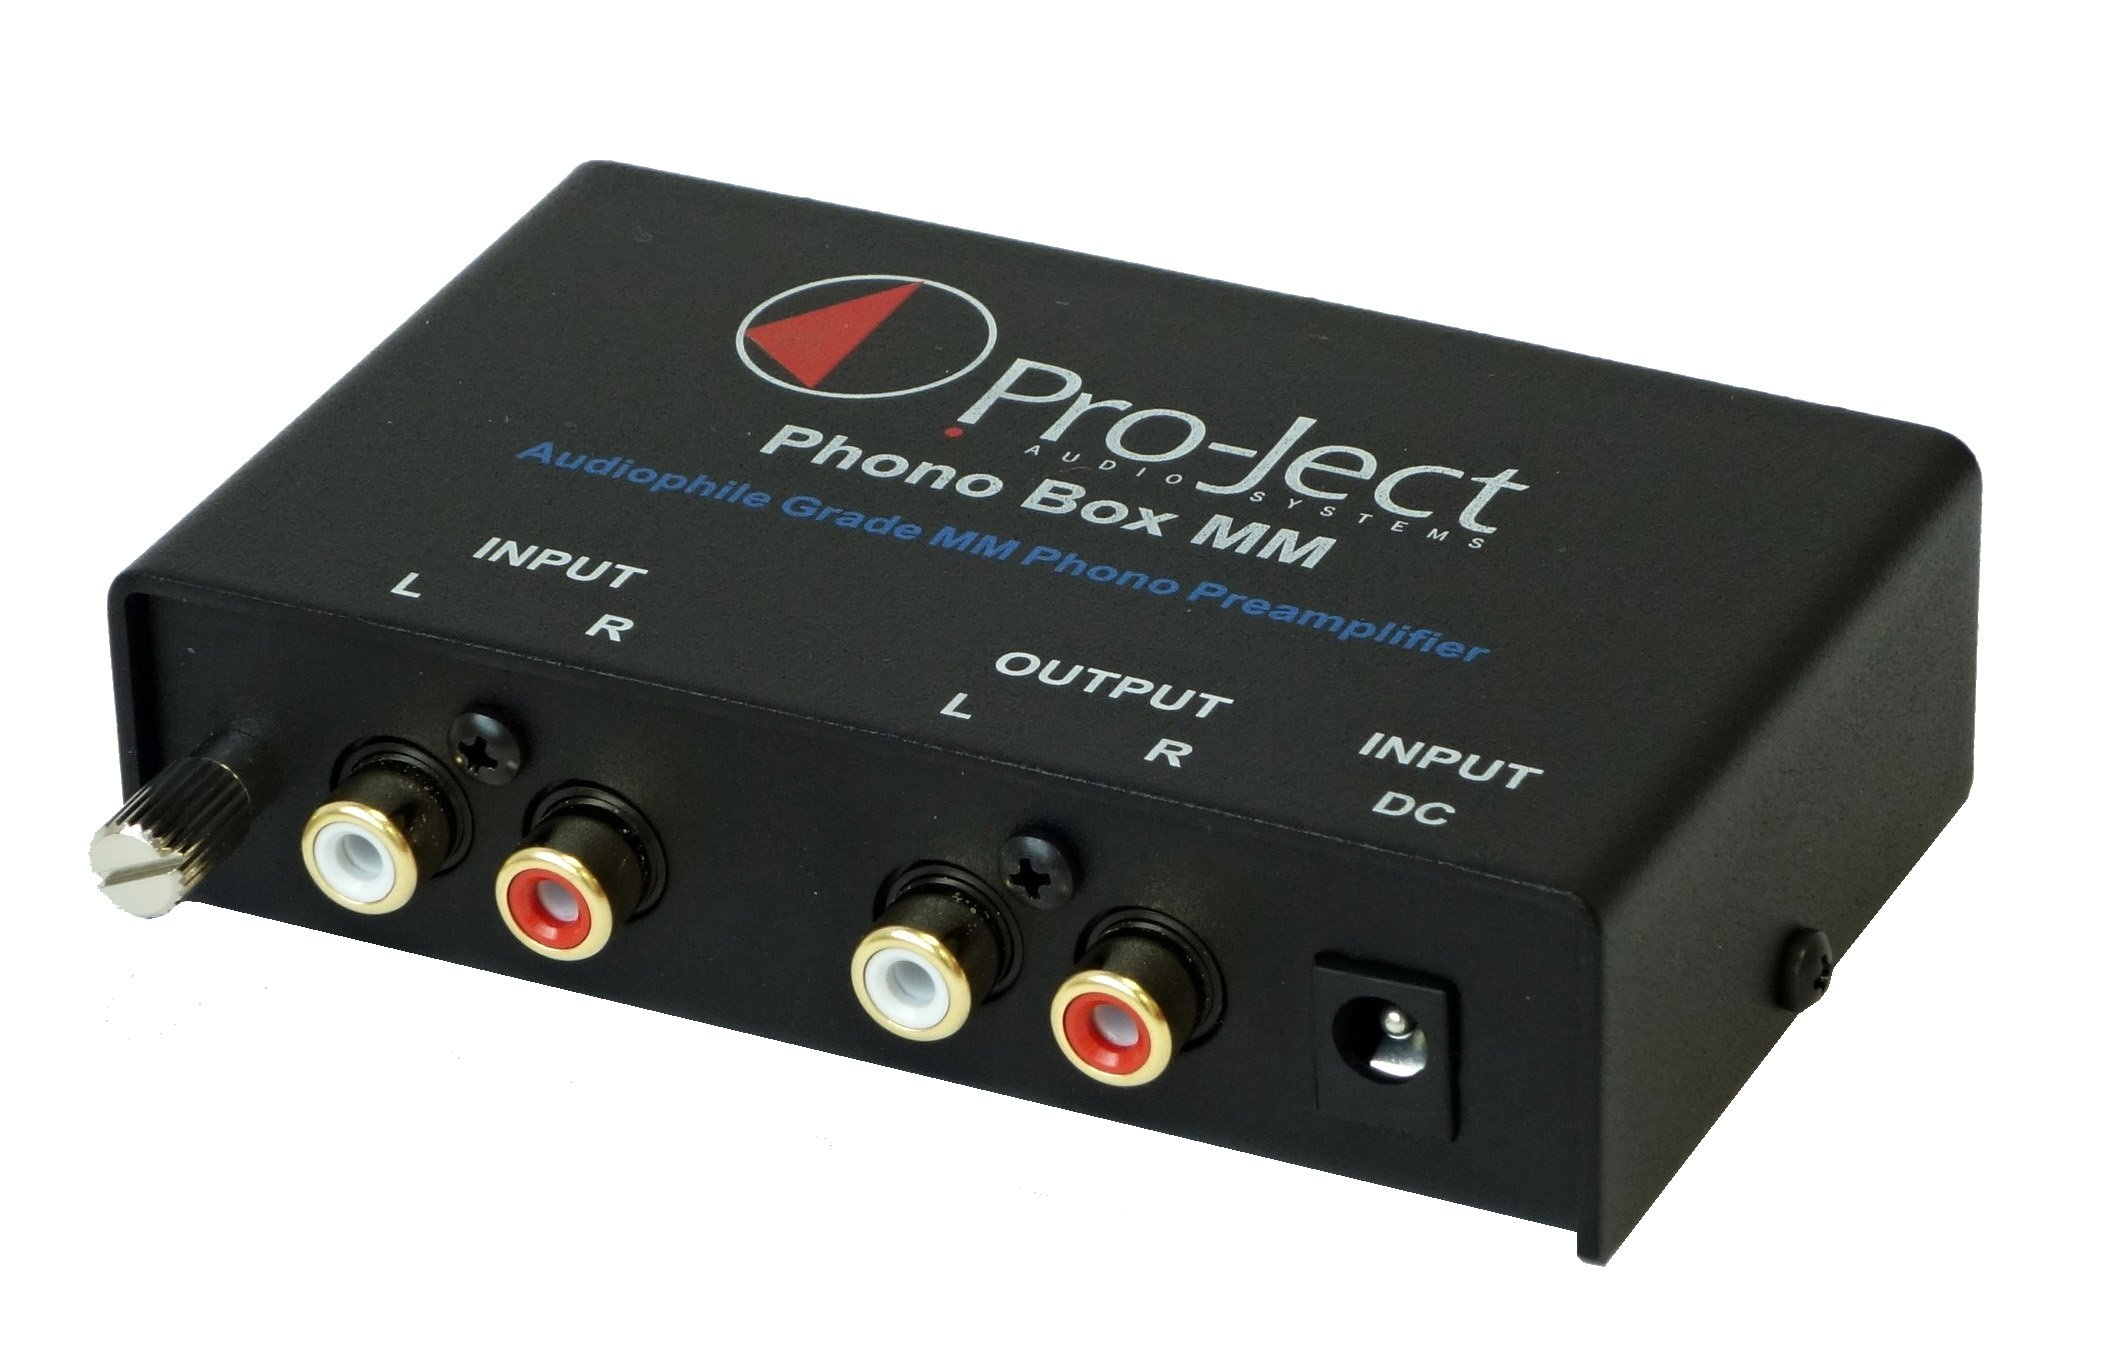 Pro-Ject Phono Box MM DC Phonograph Preamplifier,Black by Pro-Ject